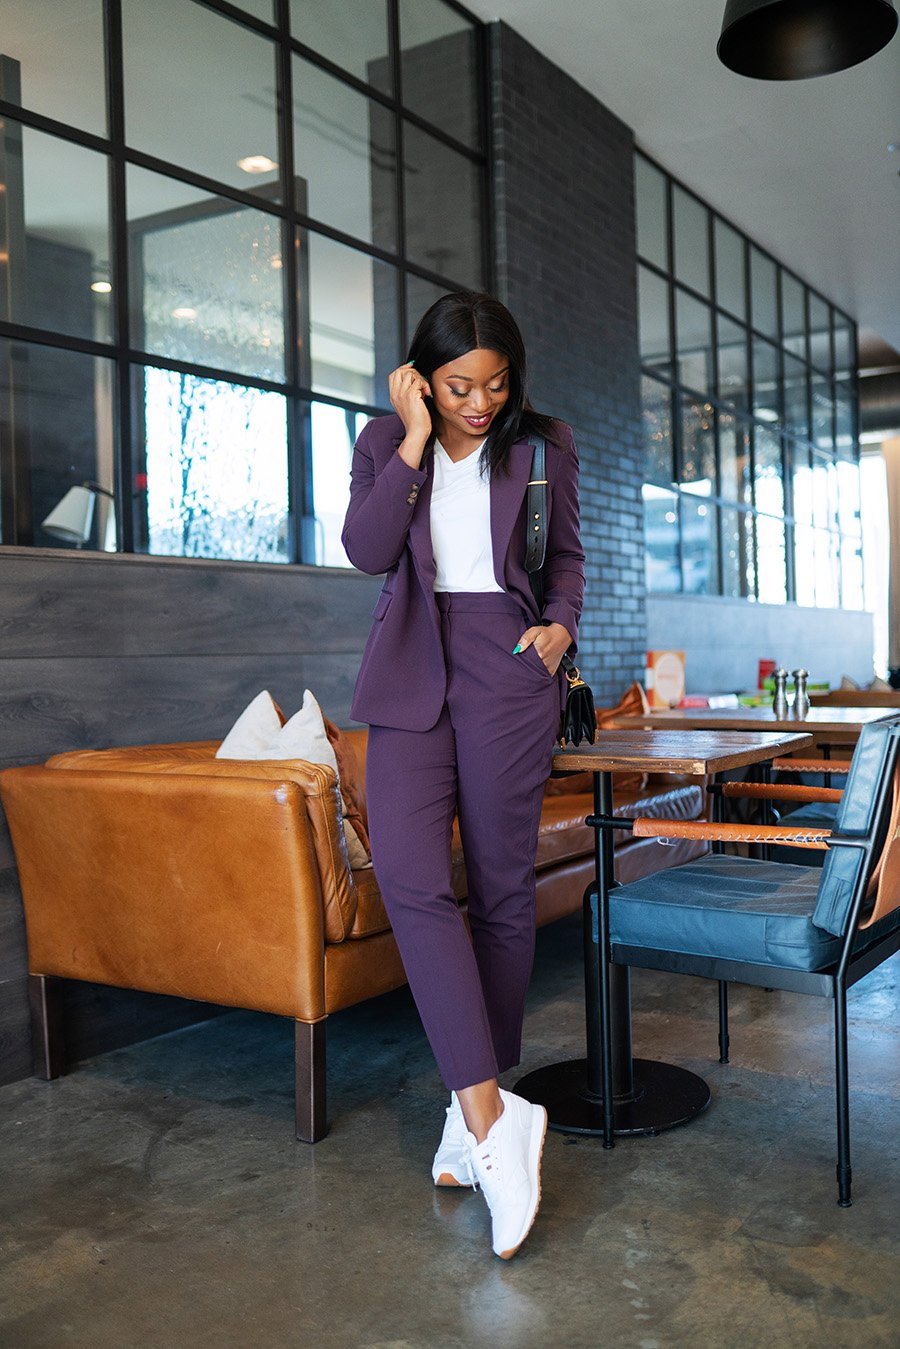 Stella-Adewunmi-of-jadore-fashion-share-how-to-style-colored-suits-and-sneakers